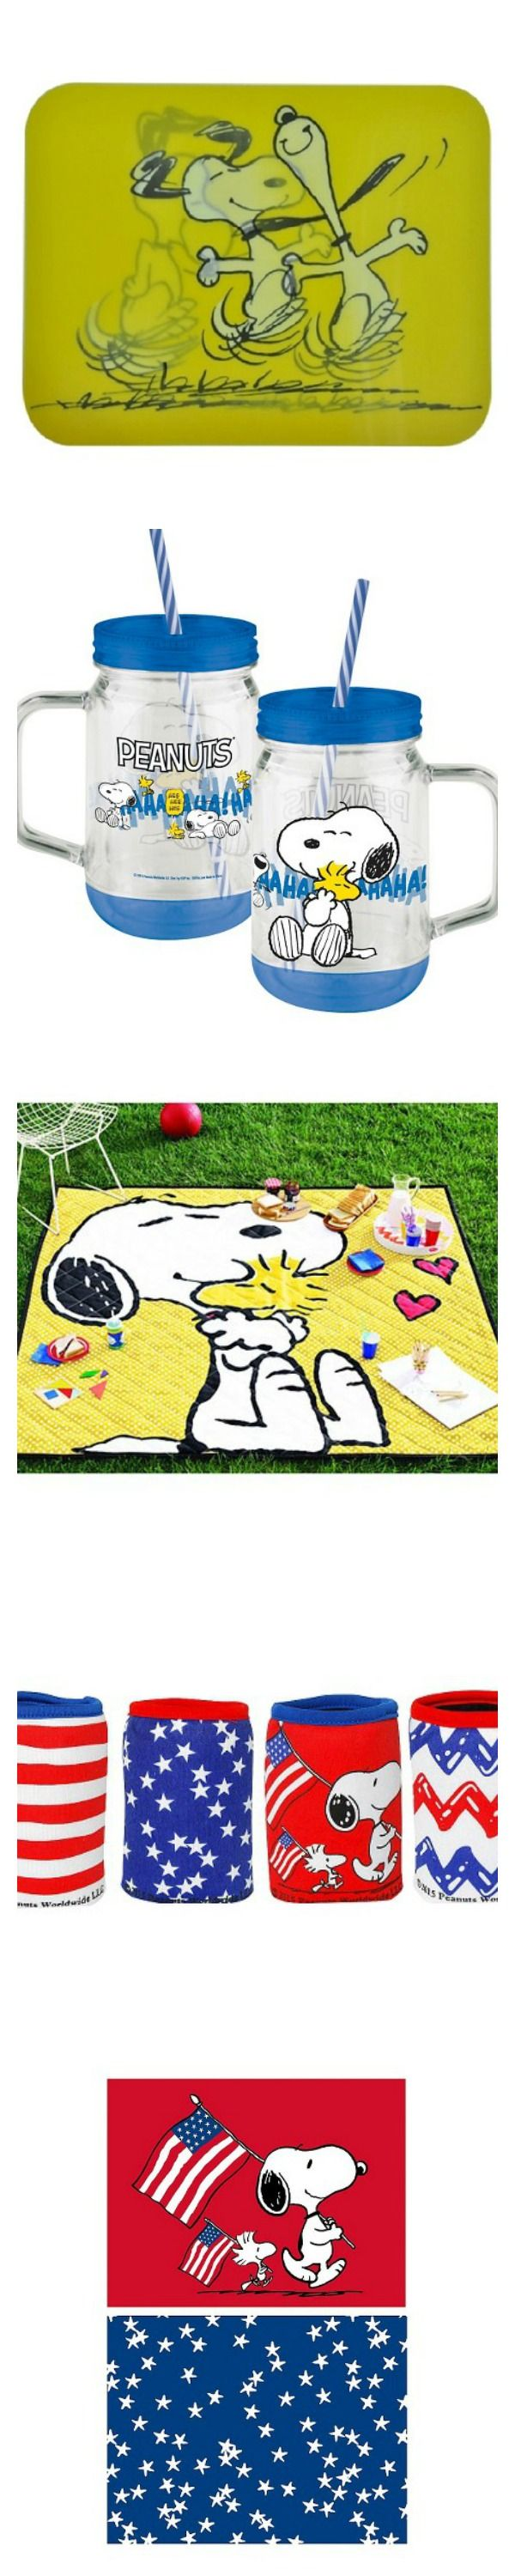 Join Snoopy, Charlie Brown and the Peanuts Gang for summer time fun! Target has lots of goodies for a great picnic, day at the Beach and Fourth of July featuring your favorite characters. Shop online to help CollectPeanuts.com.